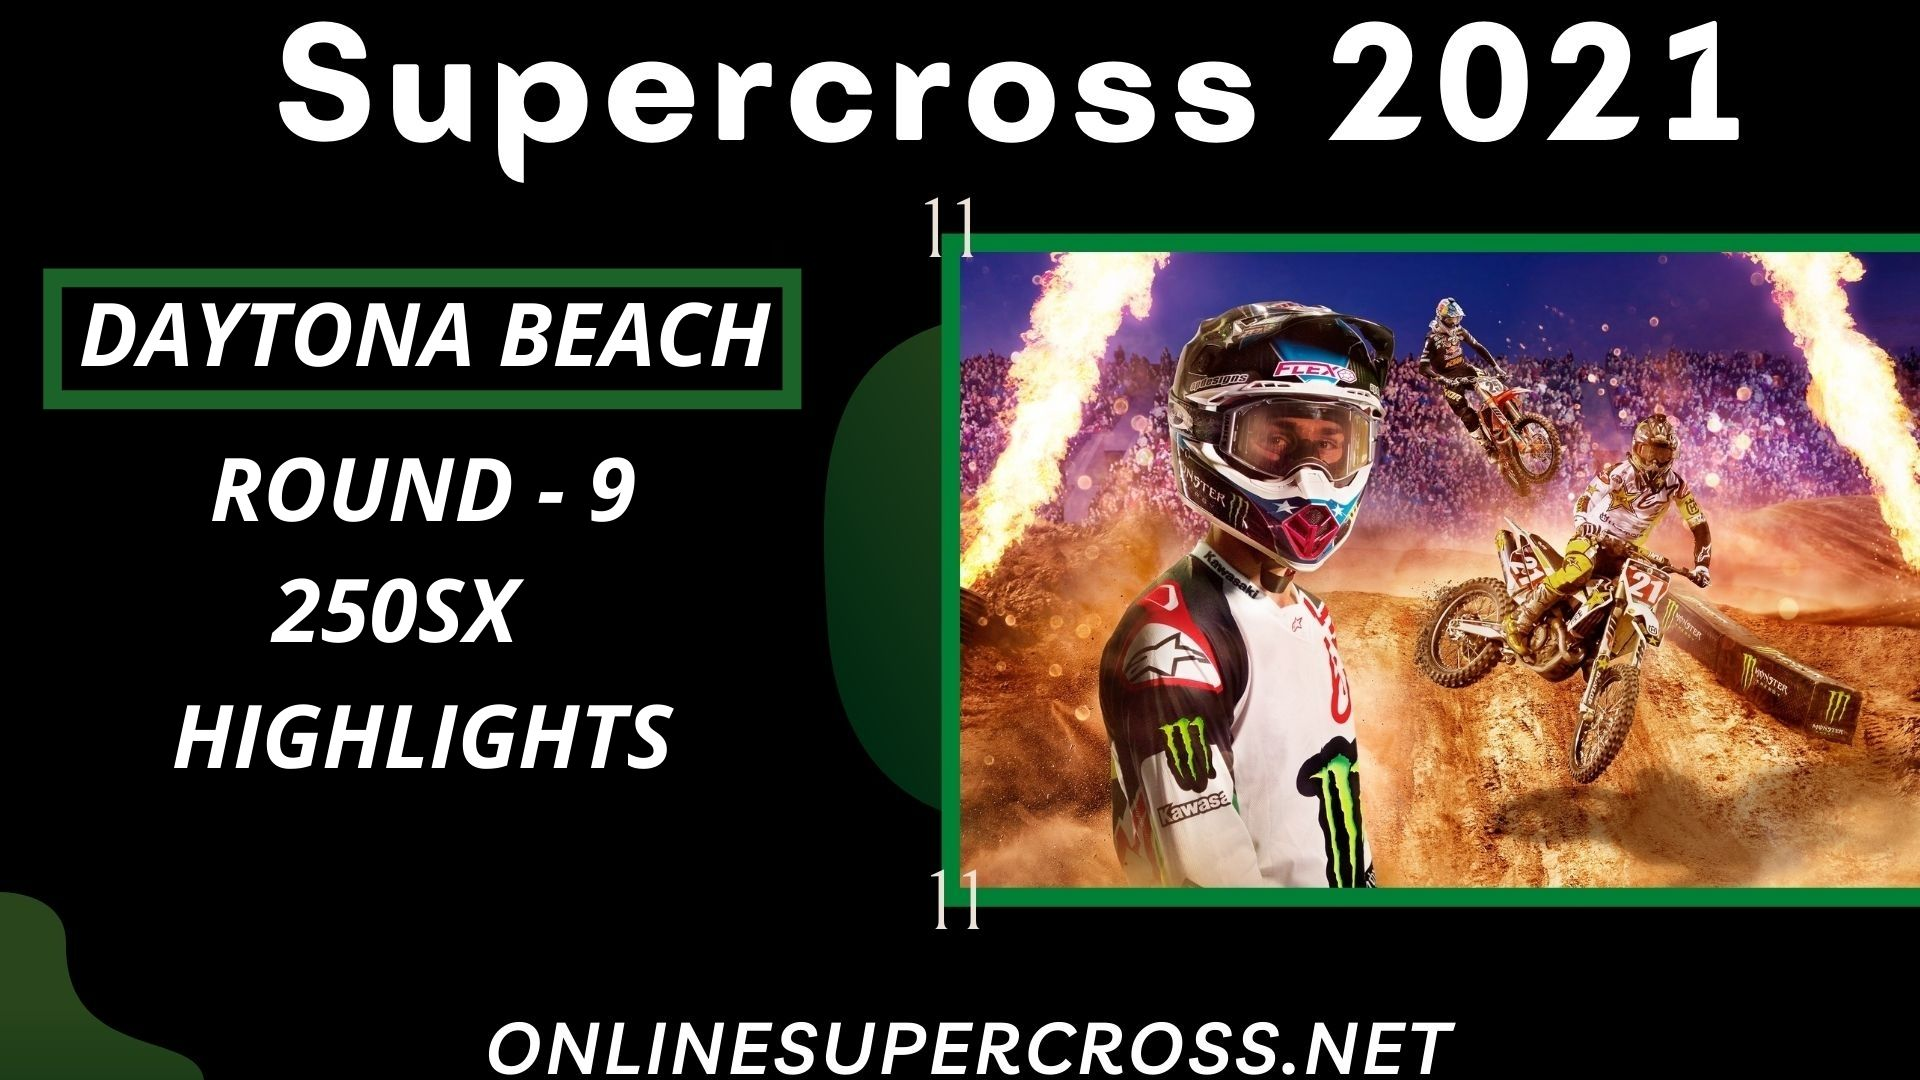 Daytona Beach Round 9 Supercross 250SX Highlights 2021